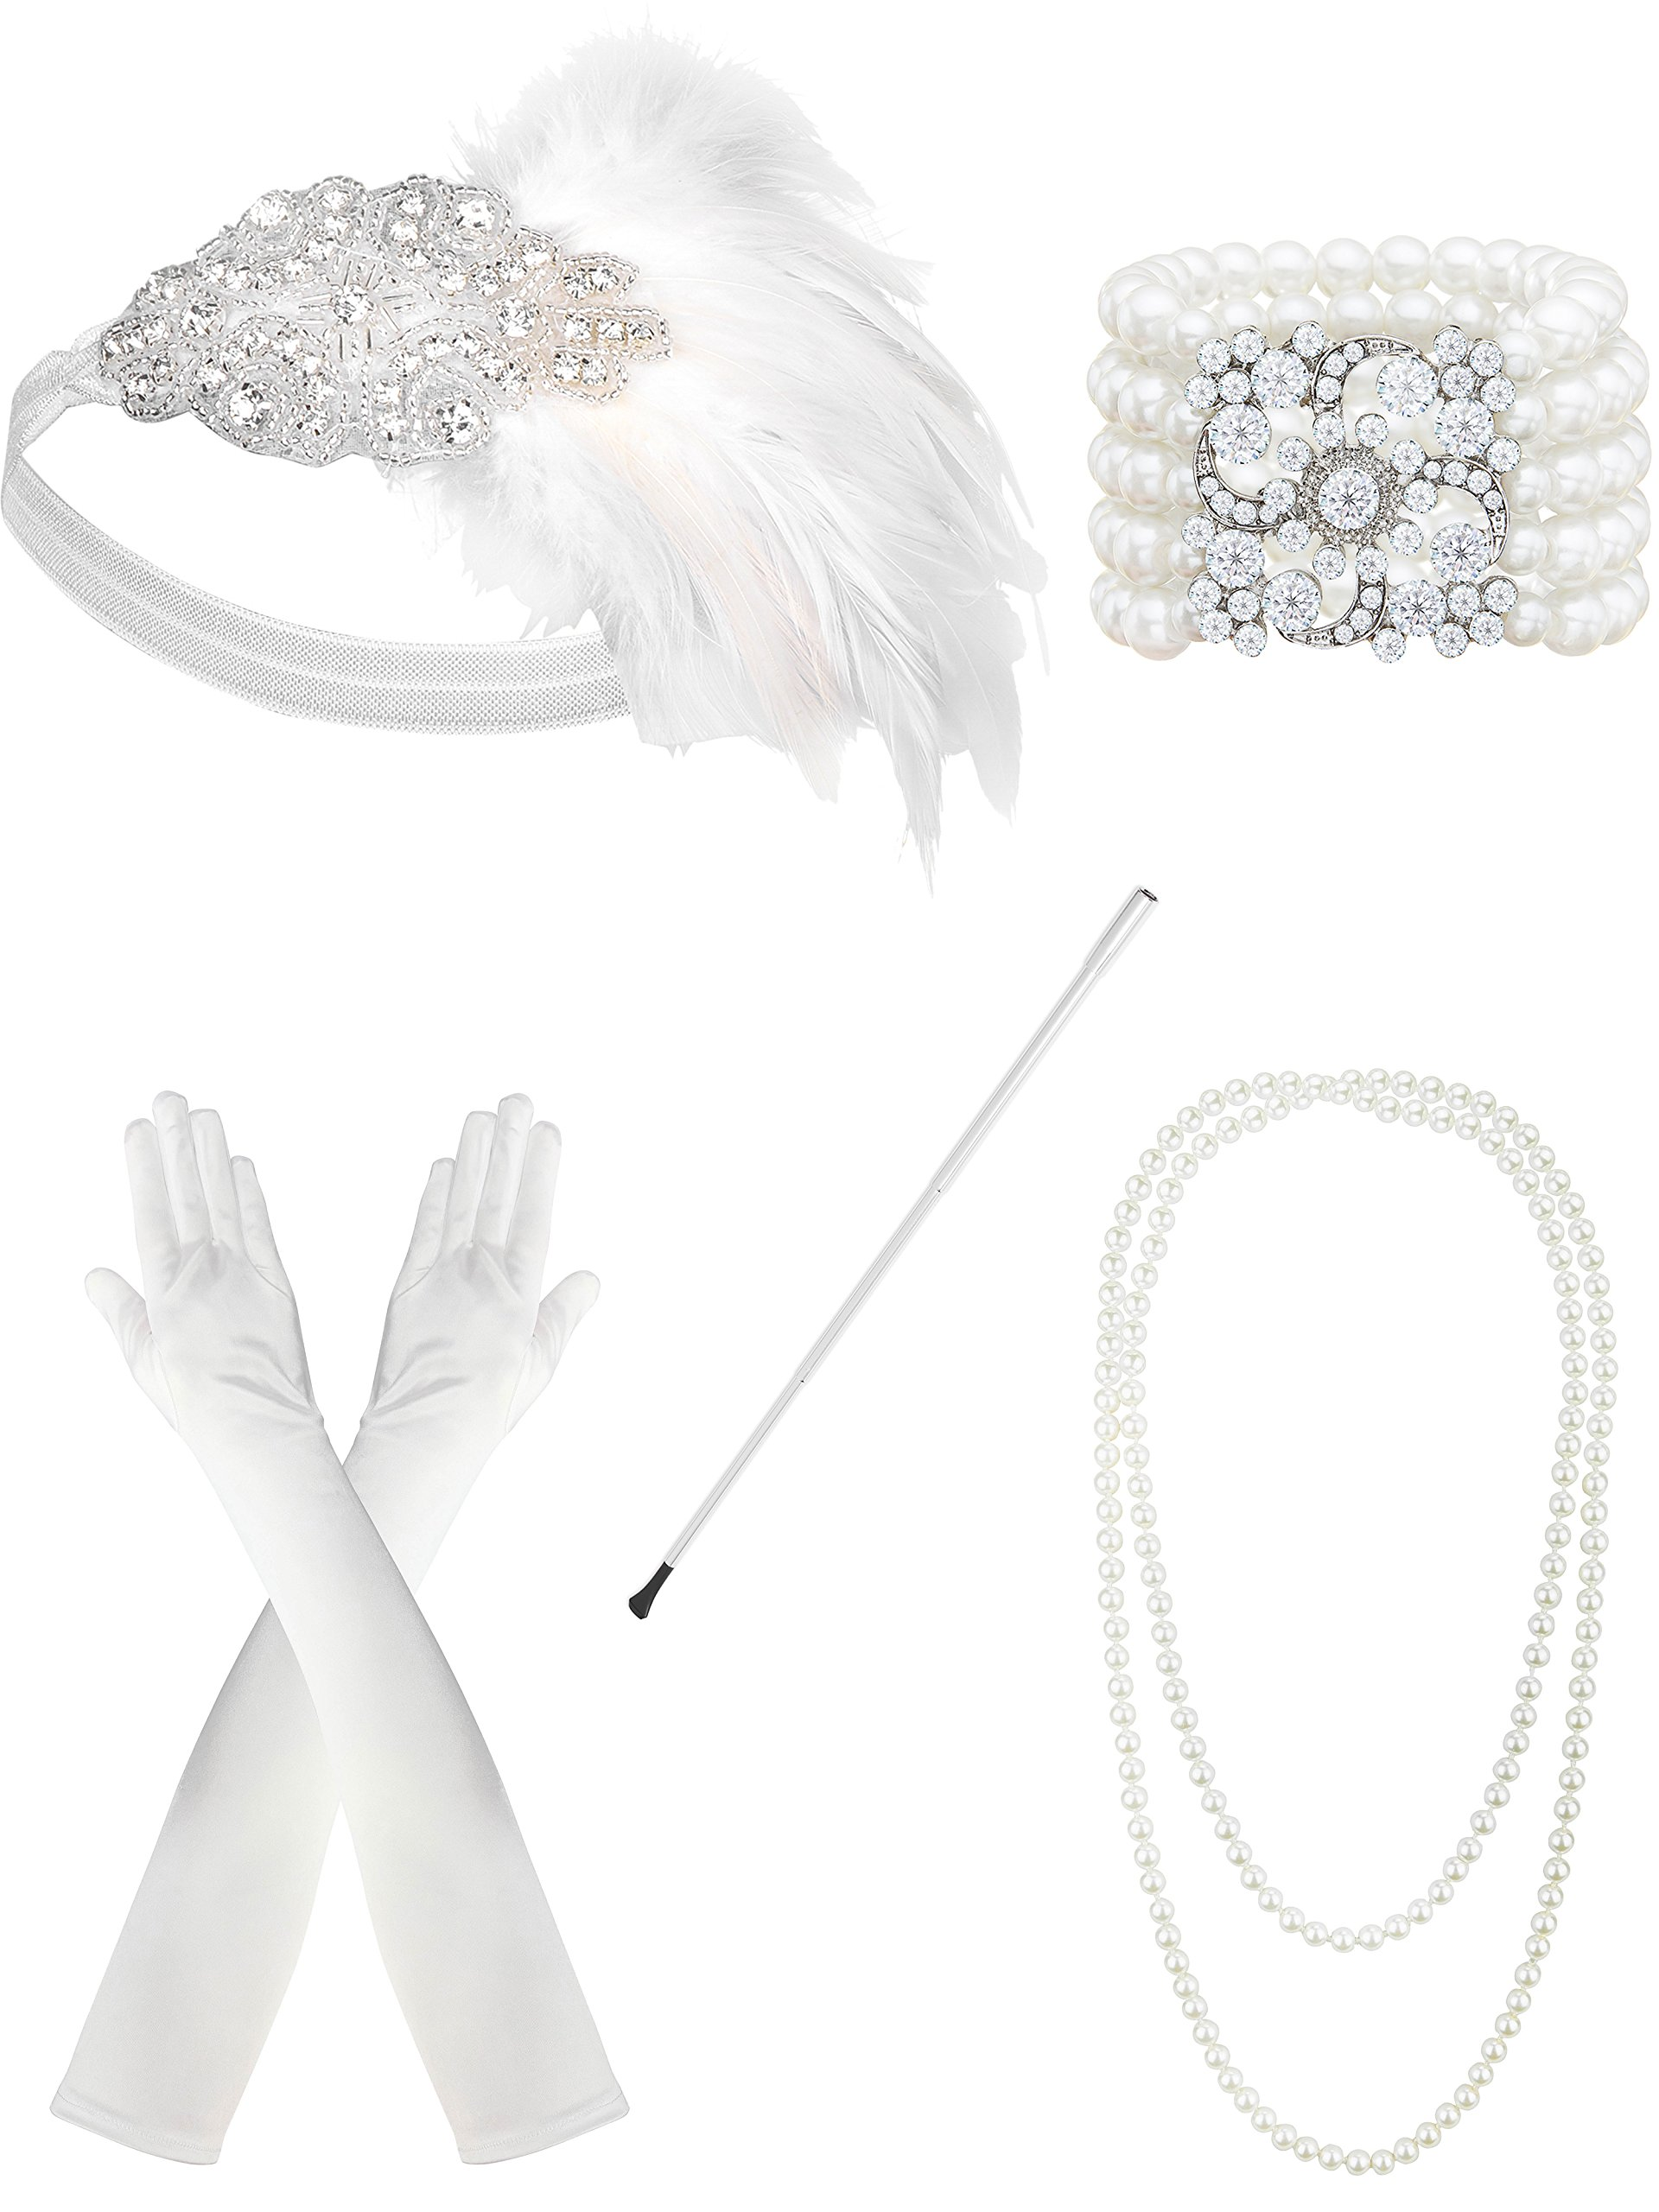 Zivyes 1920s Flapper Accessories Feather Headband Pearl Necklace White Gloves Bracelet